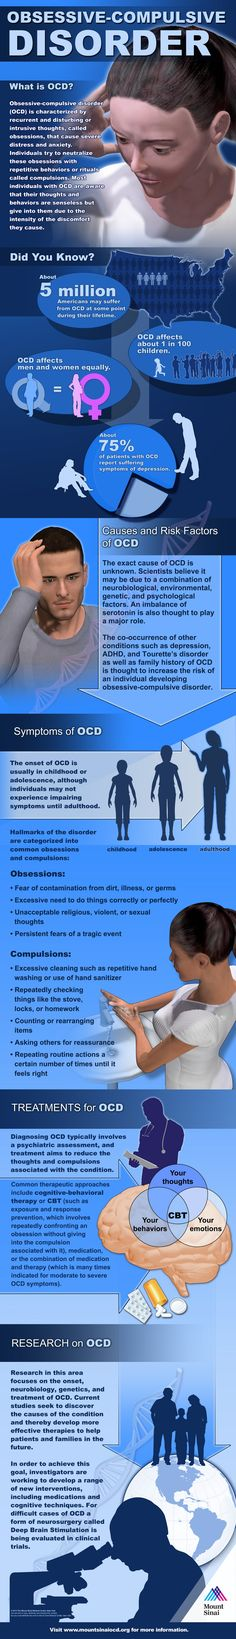 What is OCD - Obsessive Compulsive Disorder infographic